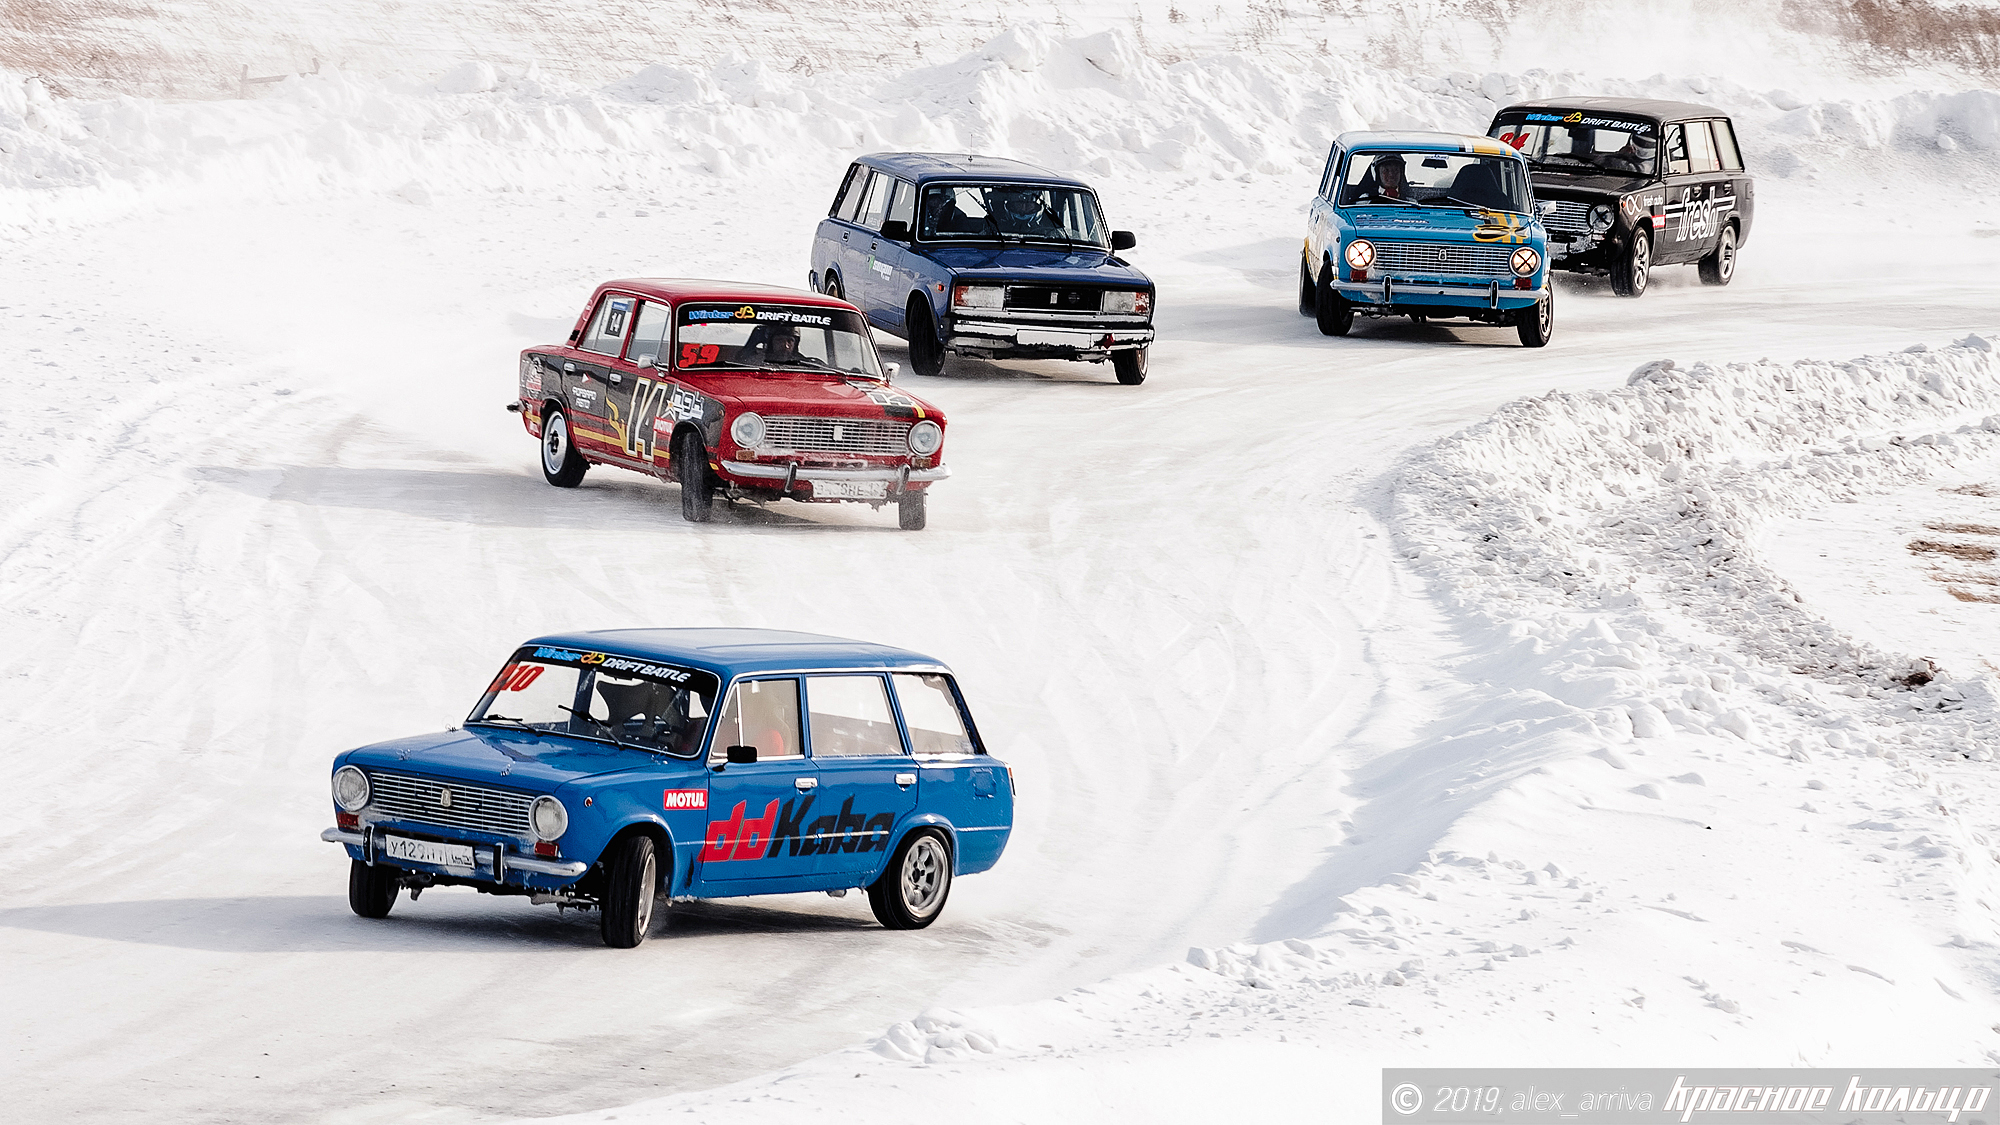 Kristaps, how did you find yourself drifting Lada's in Siberia?